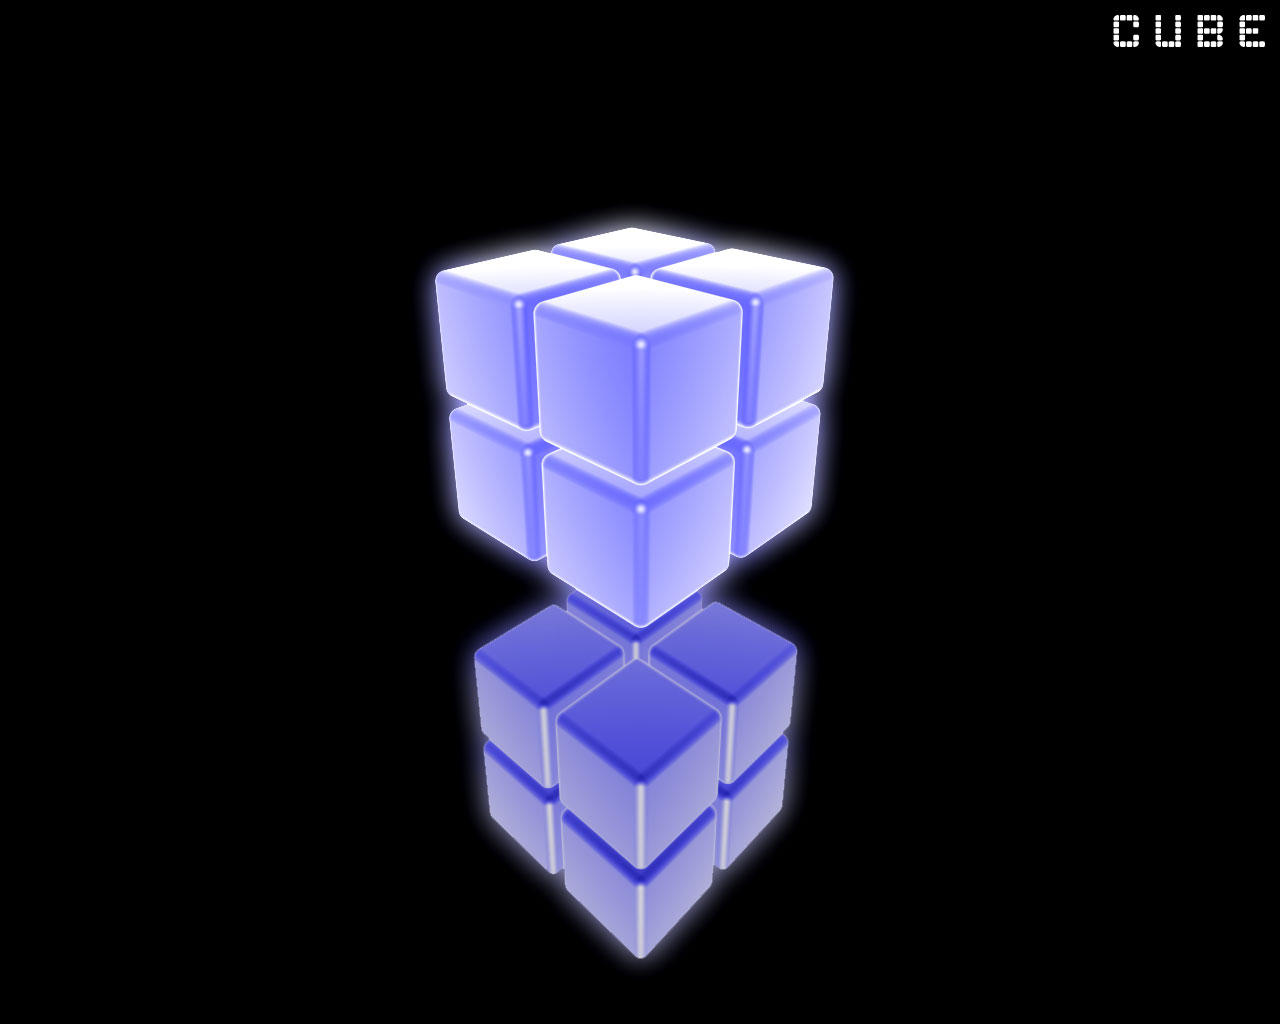 cubeic by mailfor